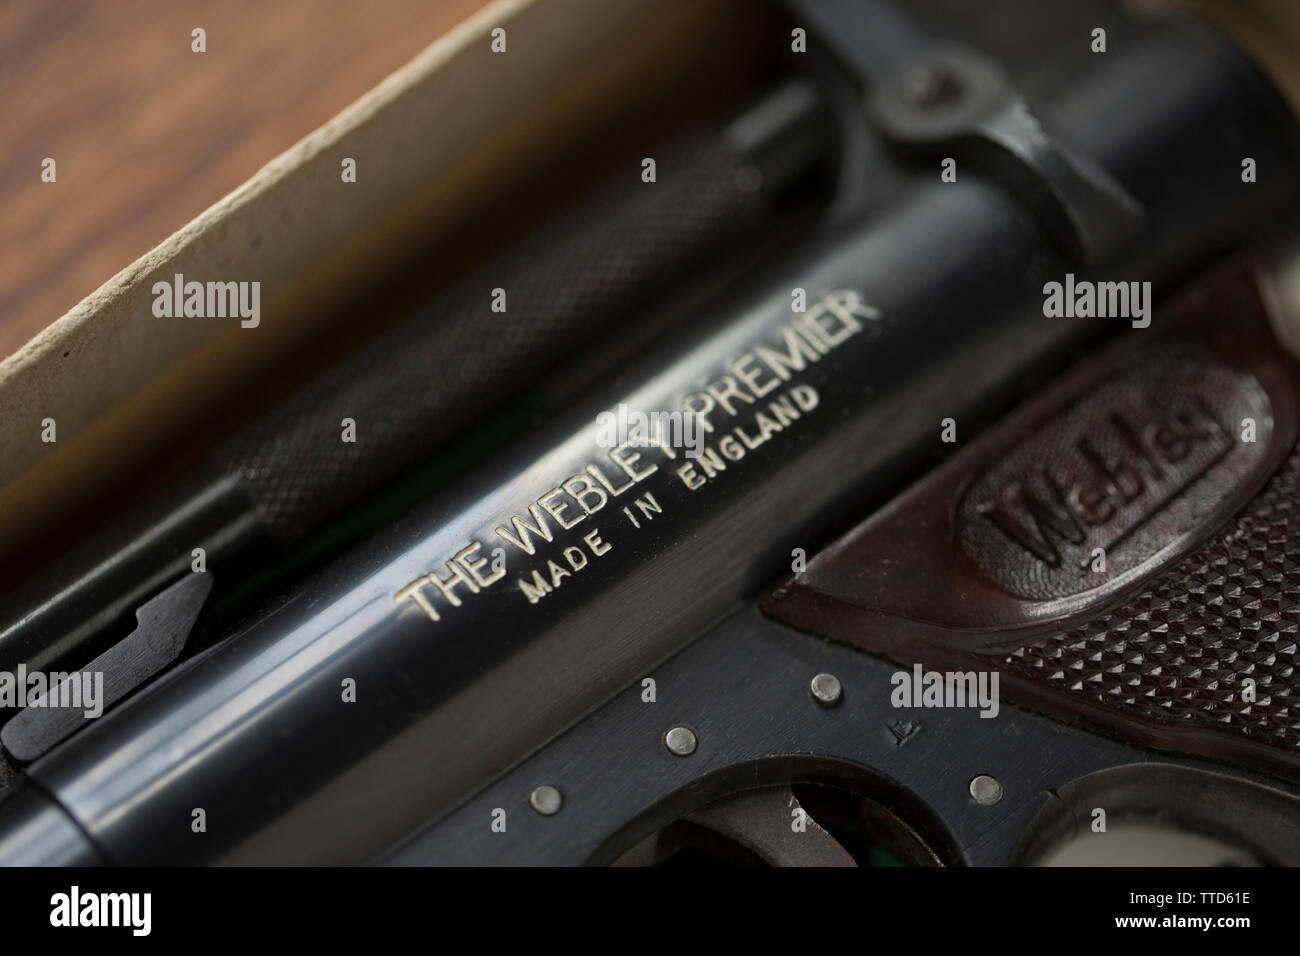 Detail of a Webley & Scott .22 'Premier' spring powered air pistol. These type of air pistols made in Birmingham England were very well made and have - Stock Image